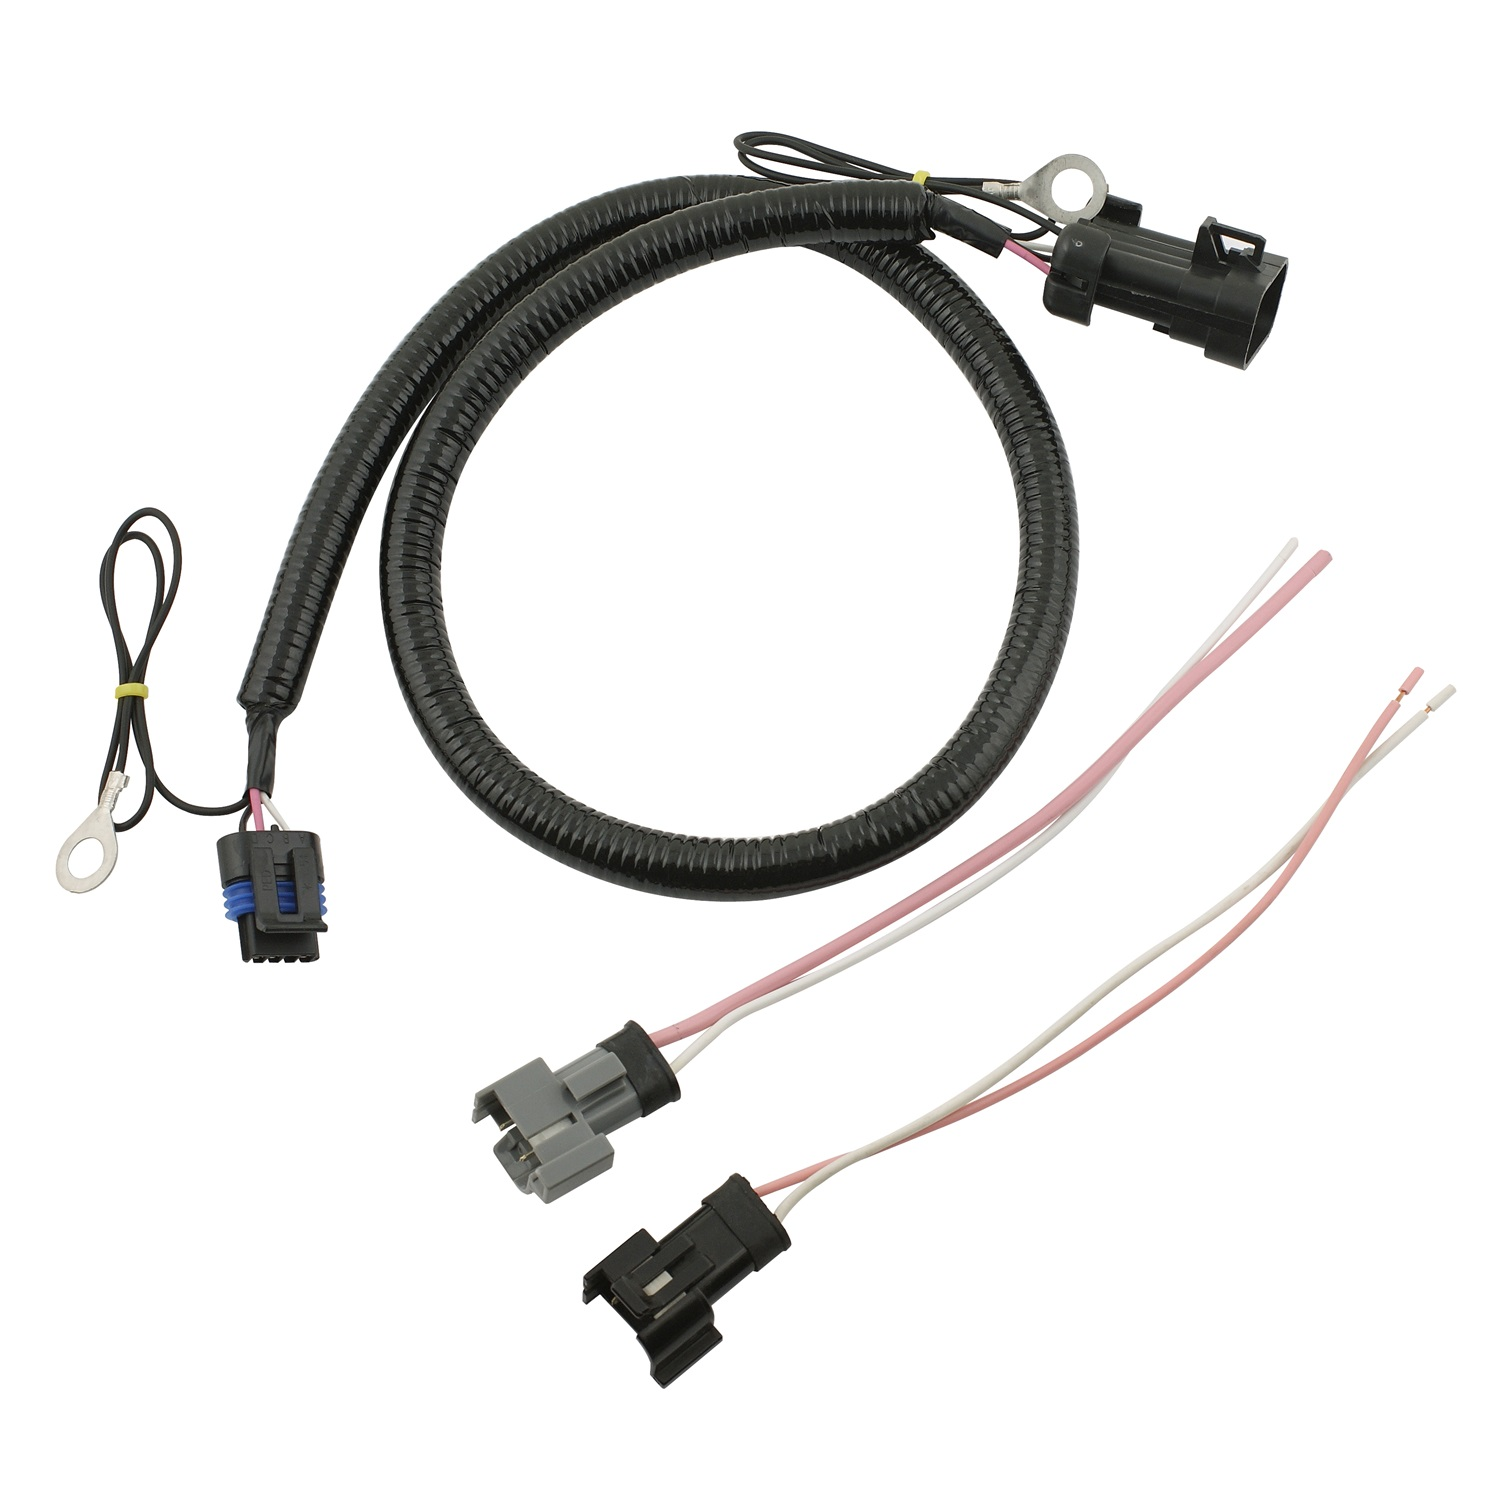 Mallory M Firestorm Lt1 Ignition Adapter Harness Fits